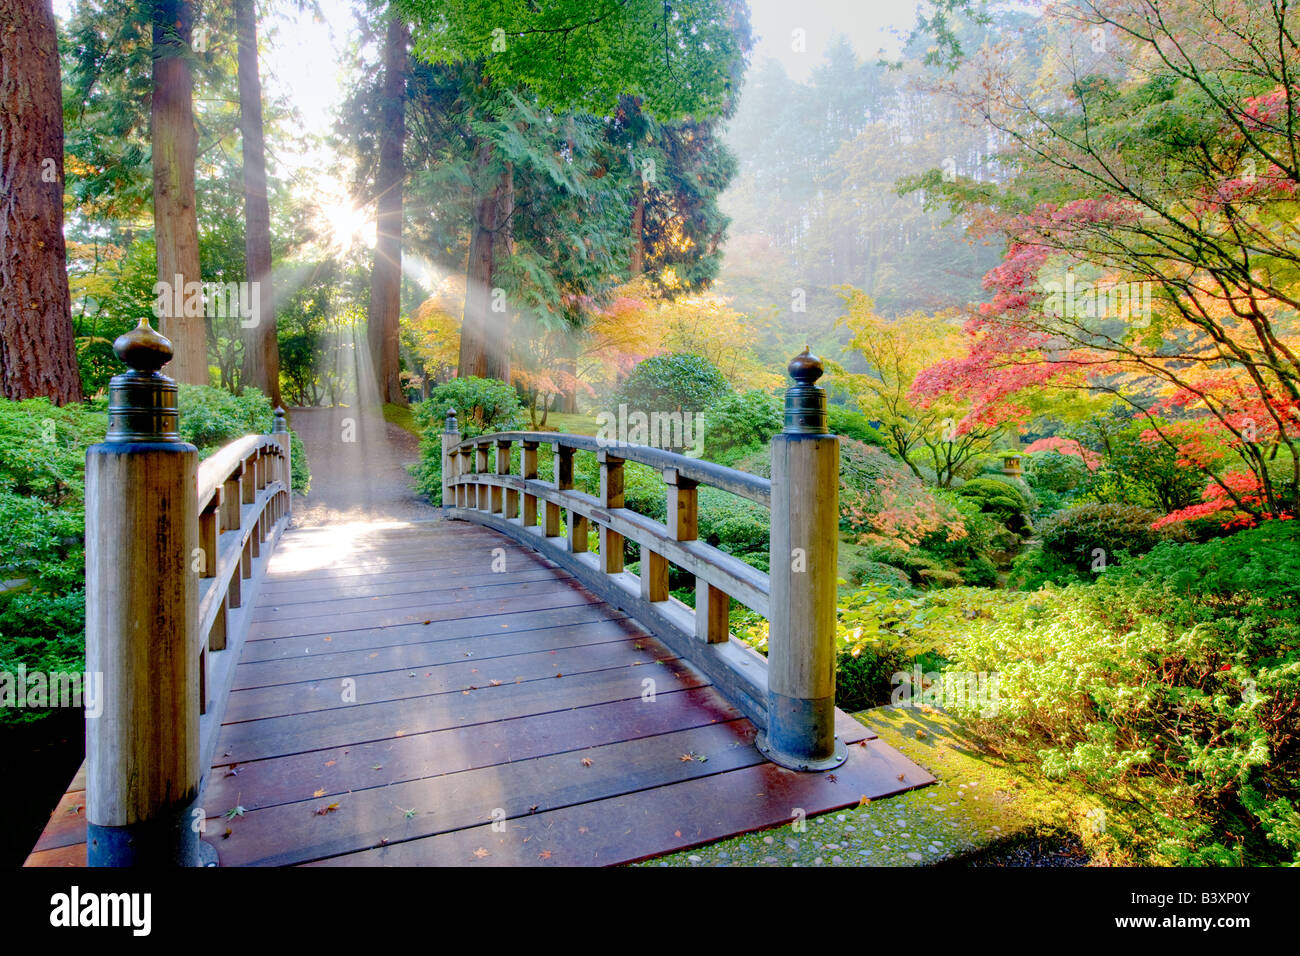 Bridge sun rays through fog and fall colored japanese maples Portland Japanese Gardens Portland Oregon - Stock Image